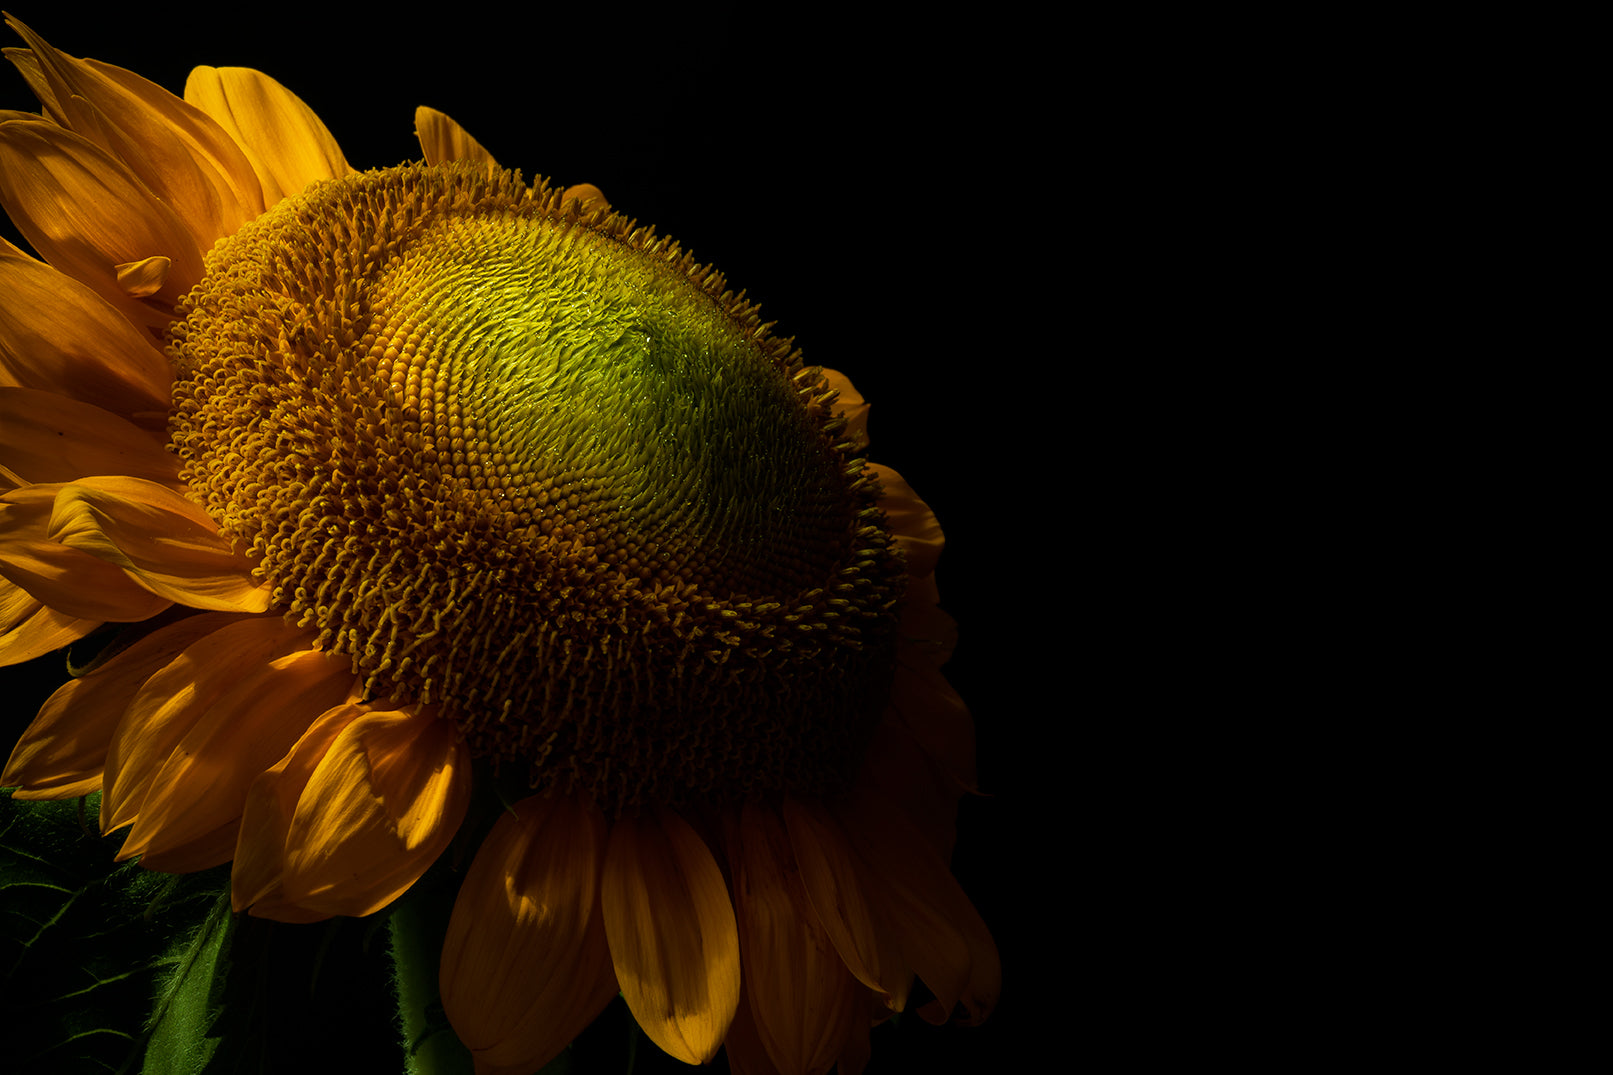 Sunflower Pantone Color of the Year